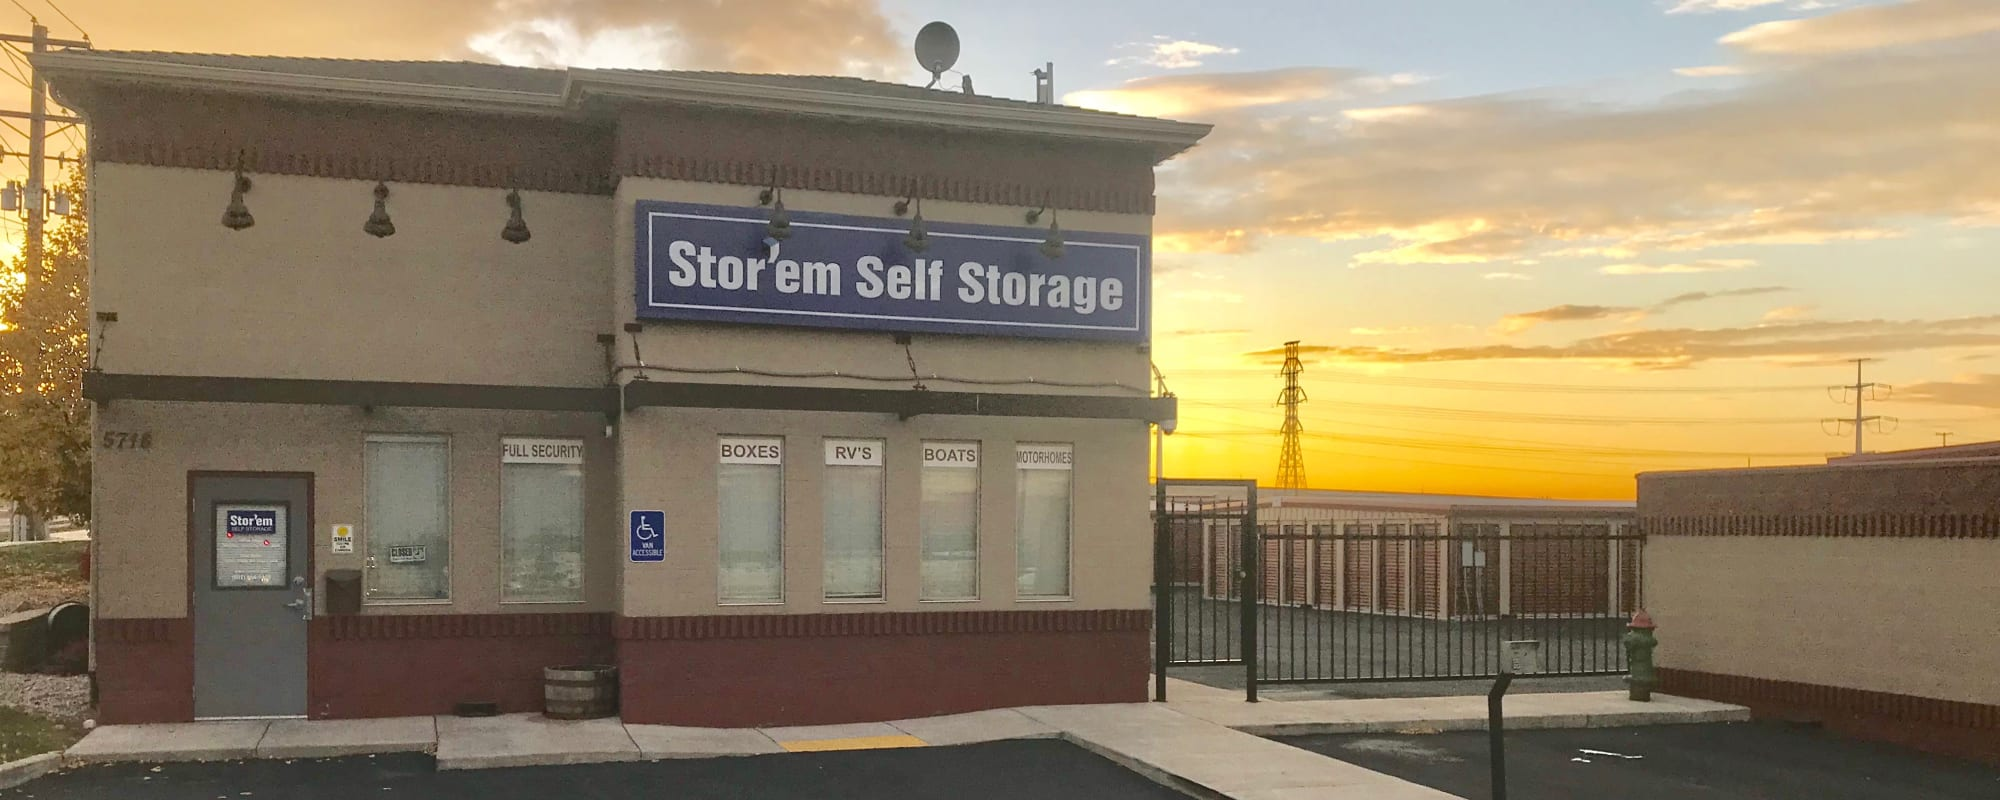 Stor'em Self Storage self storage in West Valley City, Utah